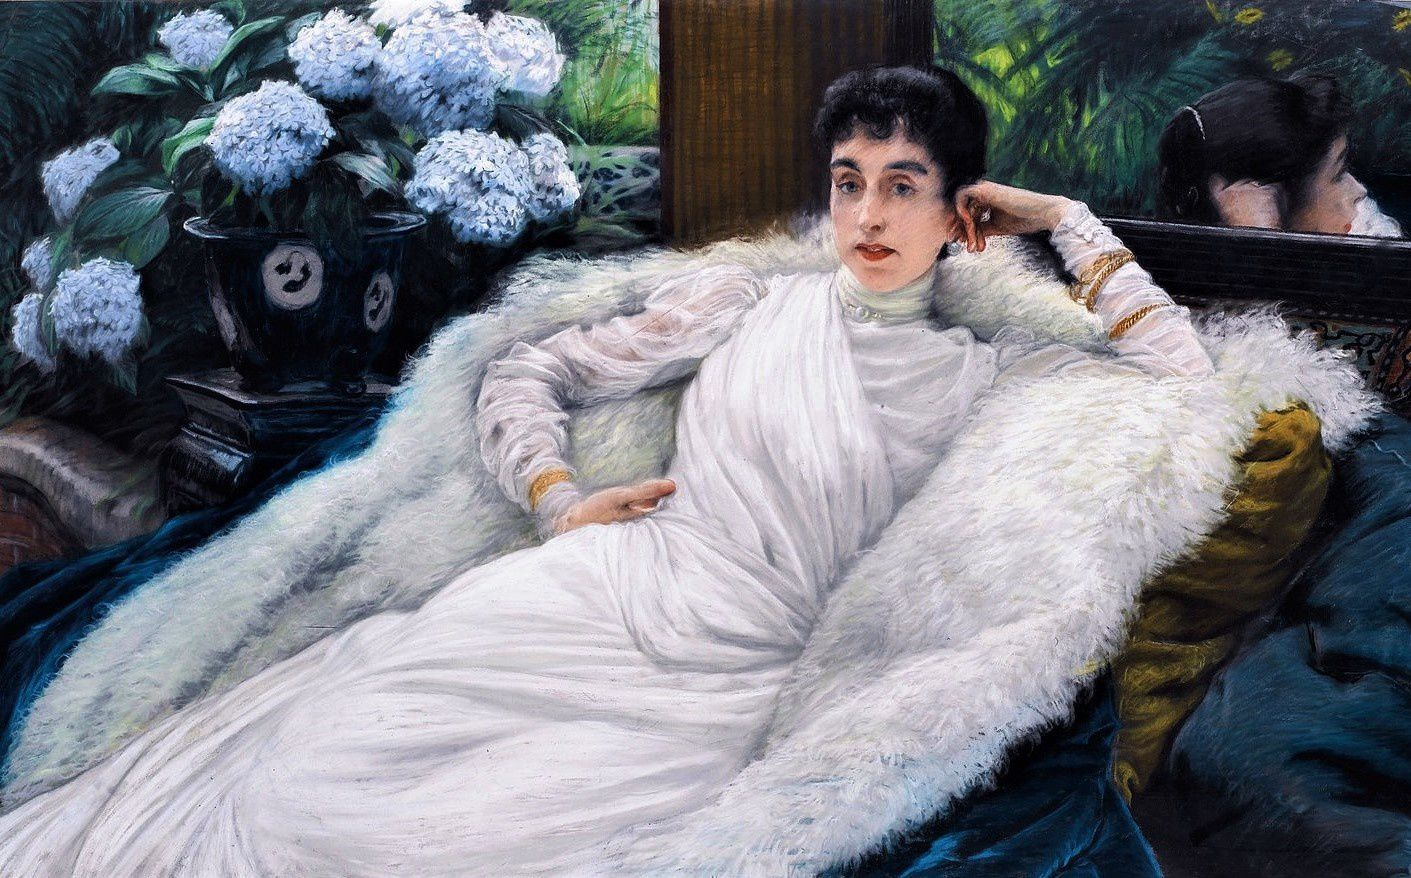 Clotilde Briatte (toile de James Tissot).